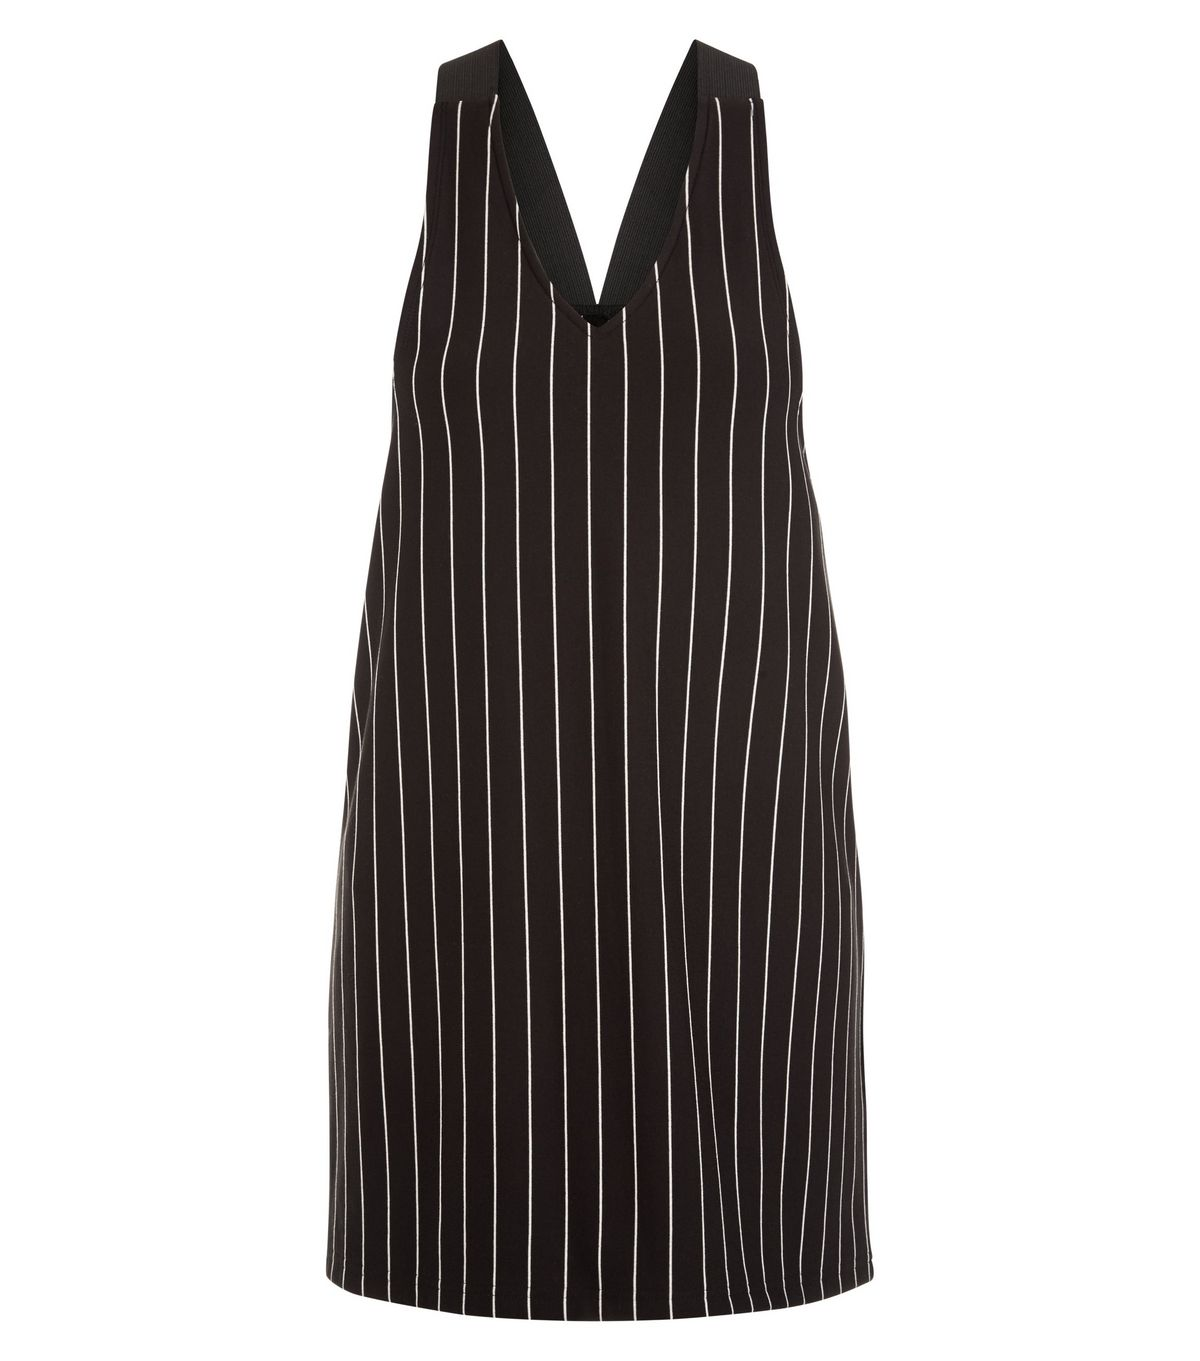 http://media.newlookassets.com/i/newlook/378979901/teens/dresses/day-dresses/teens-black-pinstripe-pinafore-dress/?$new_pdp_szoom_image_1200$